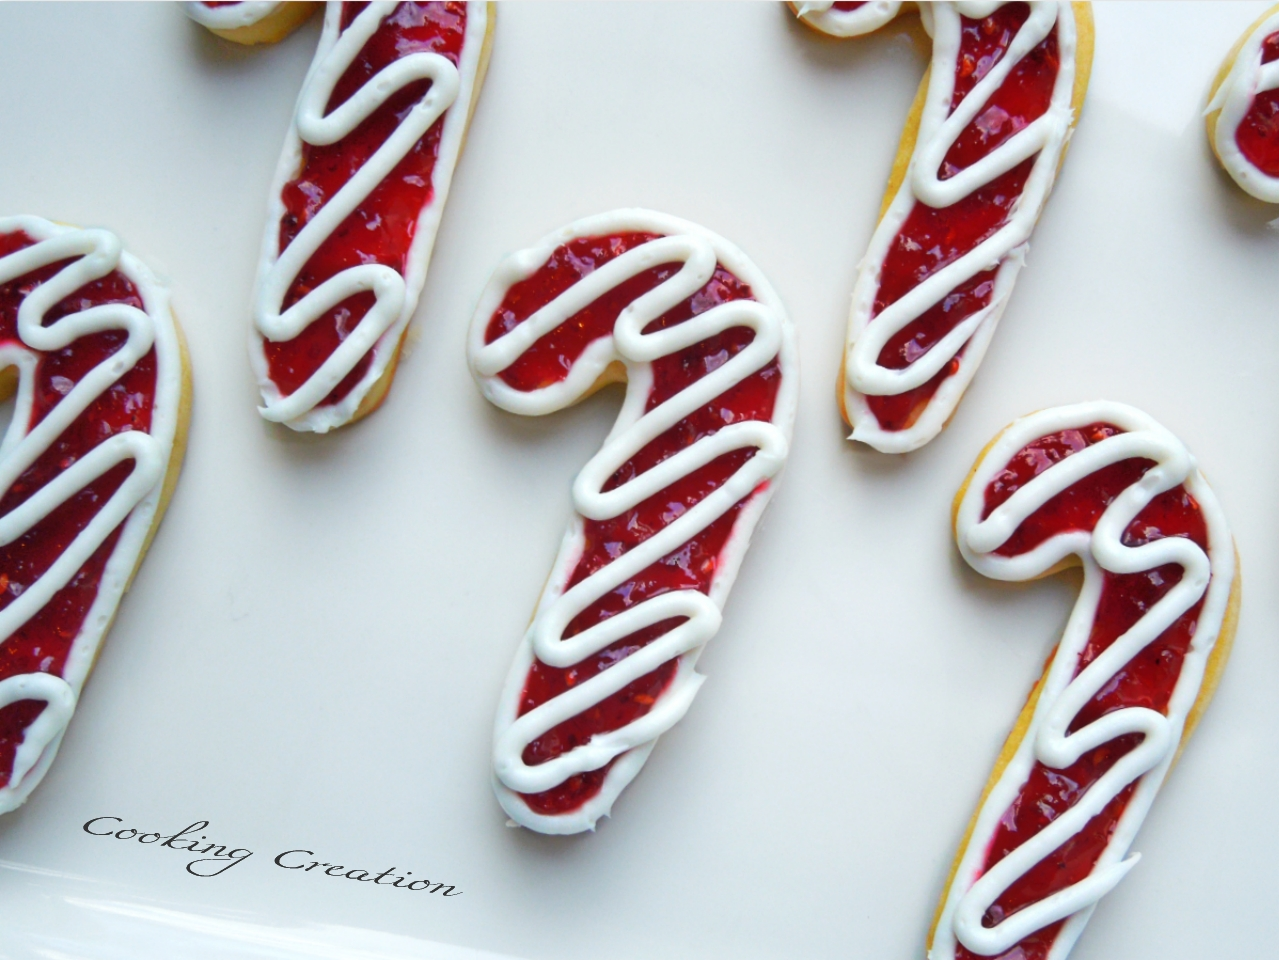 Cooking Creation: Raspberry Shortbread Candy Cane Cookies